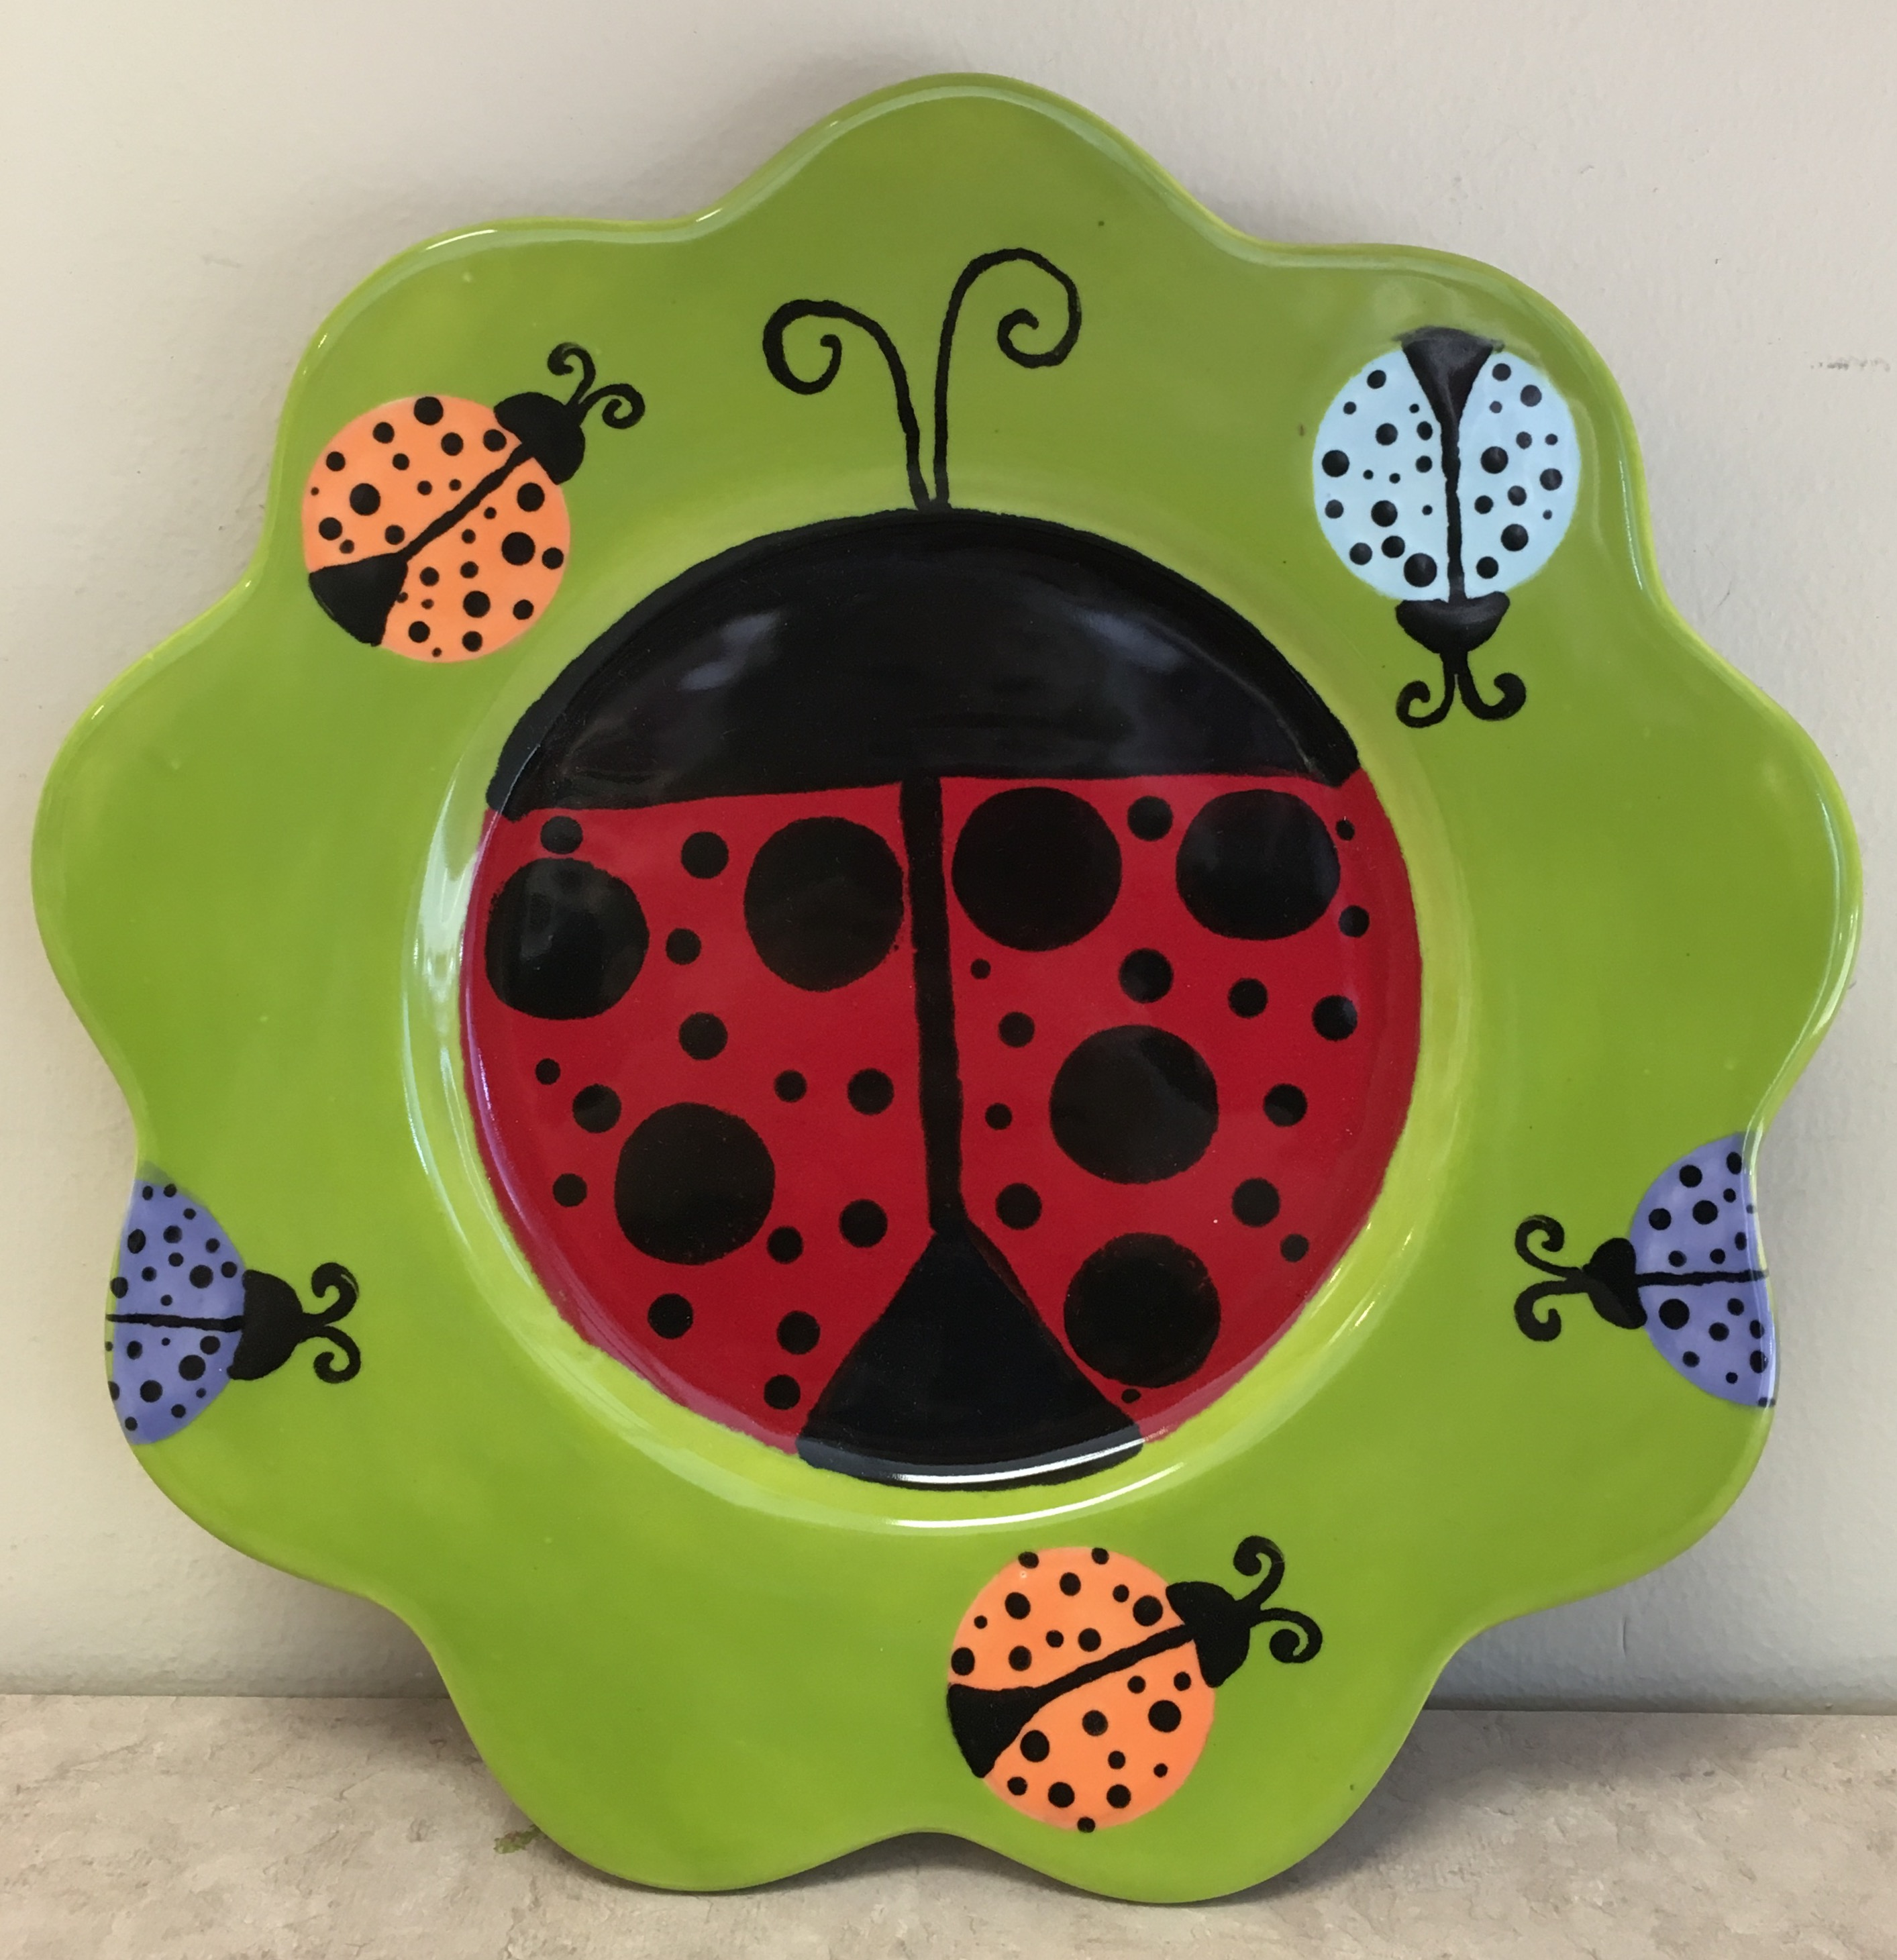 art camp 2017 June ladybug plate